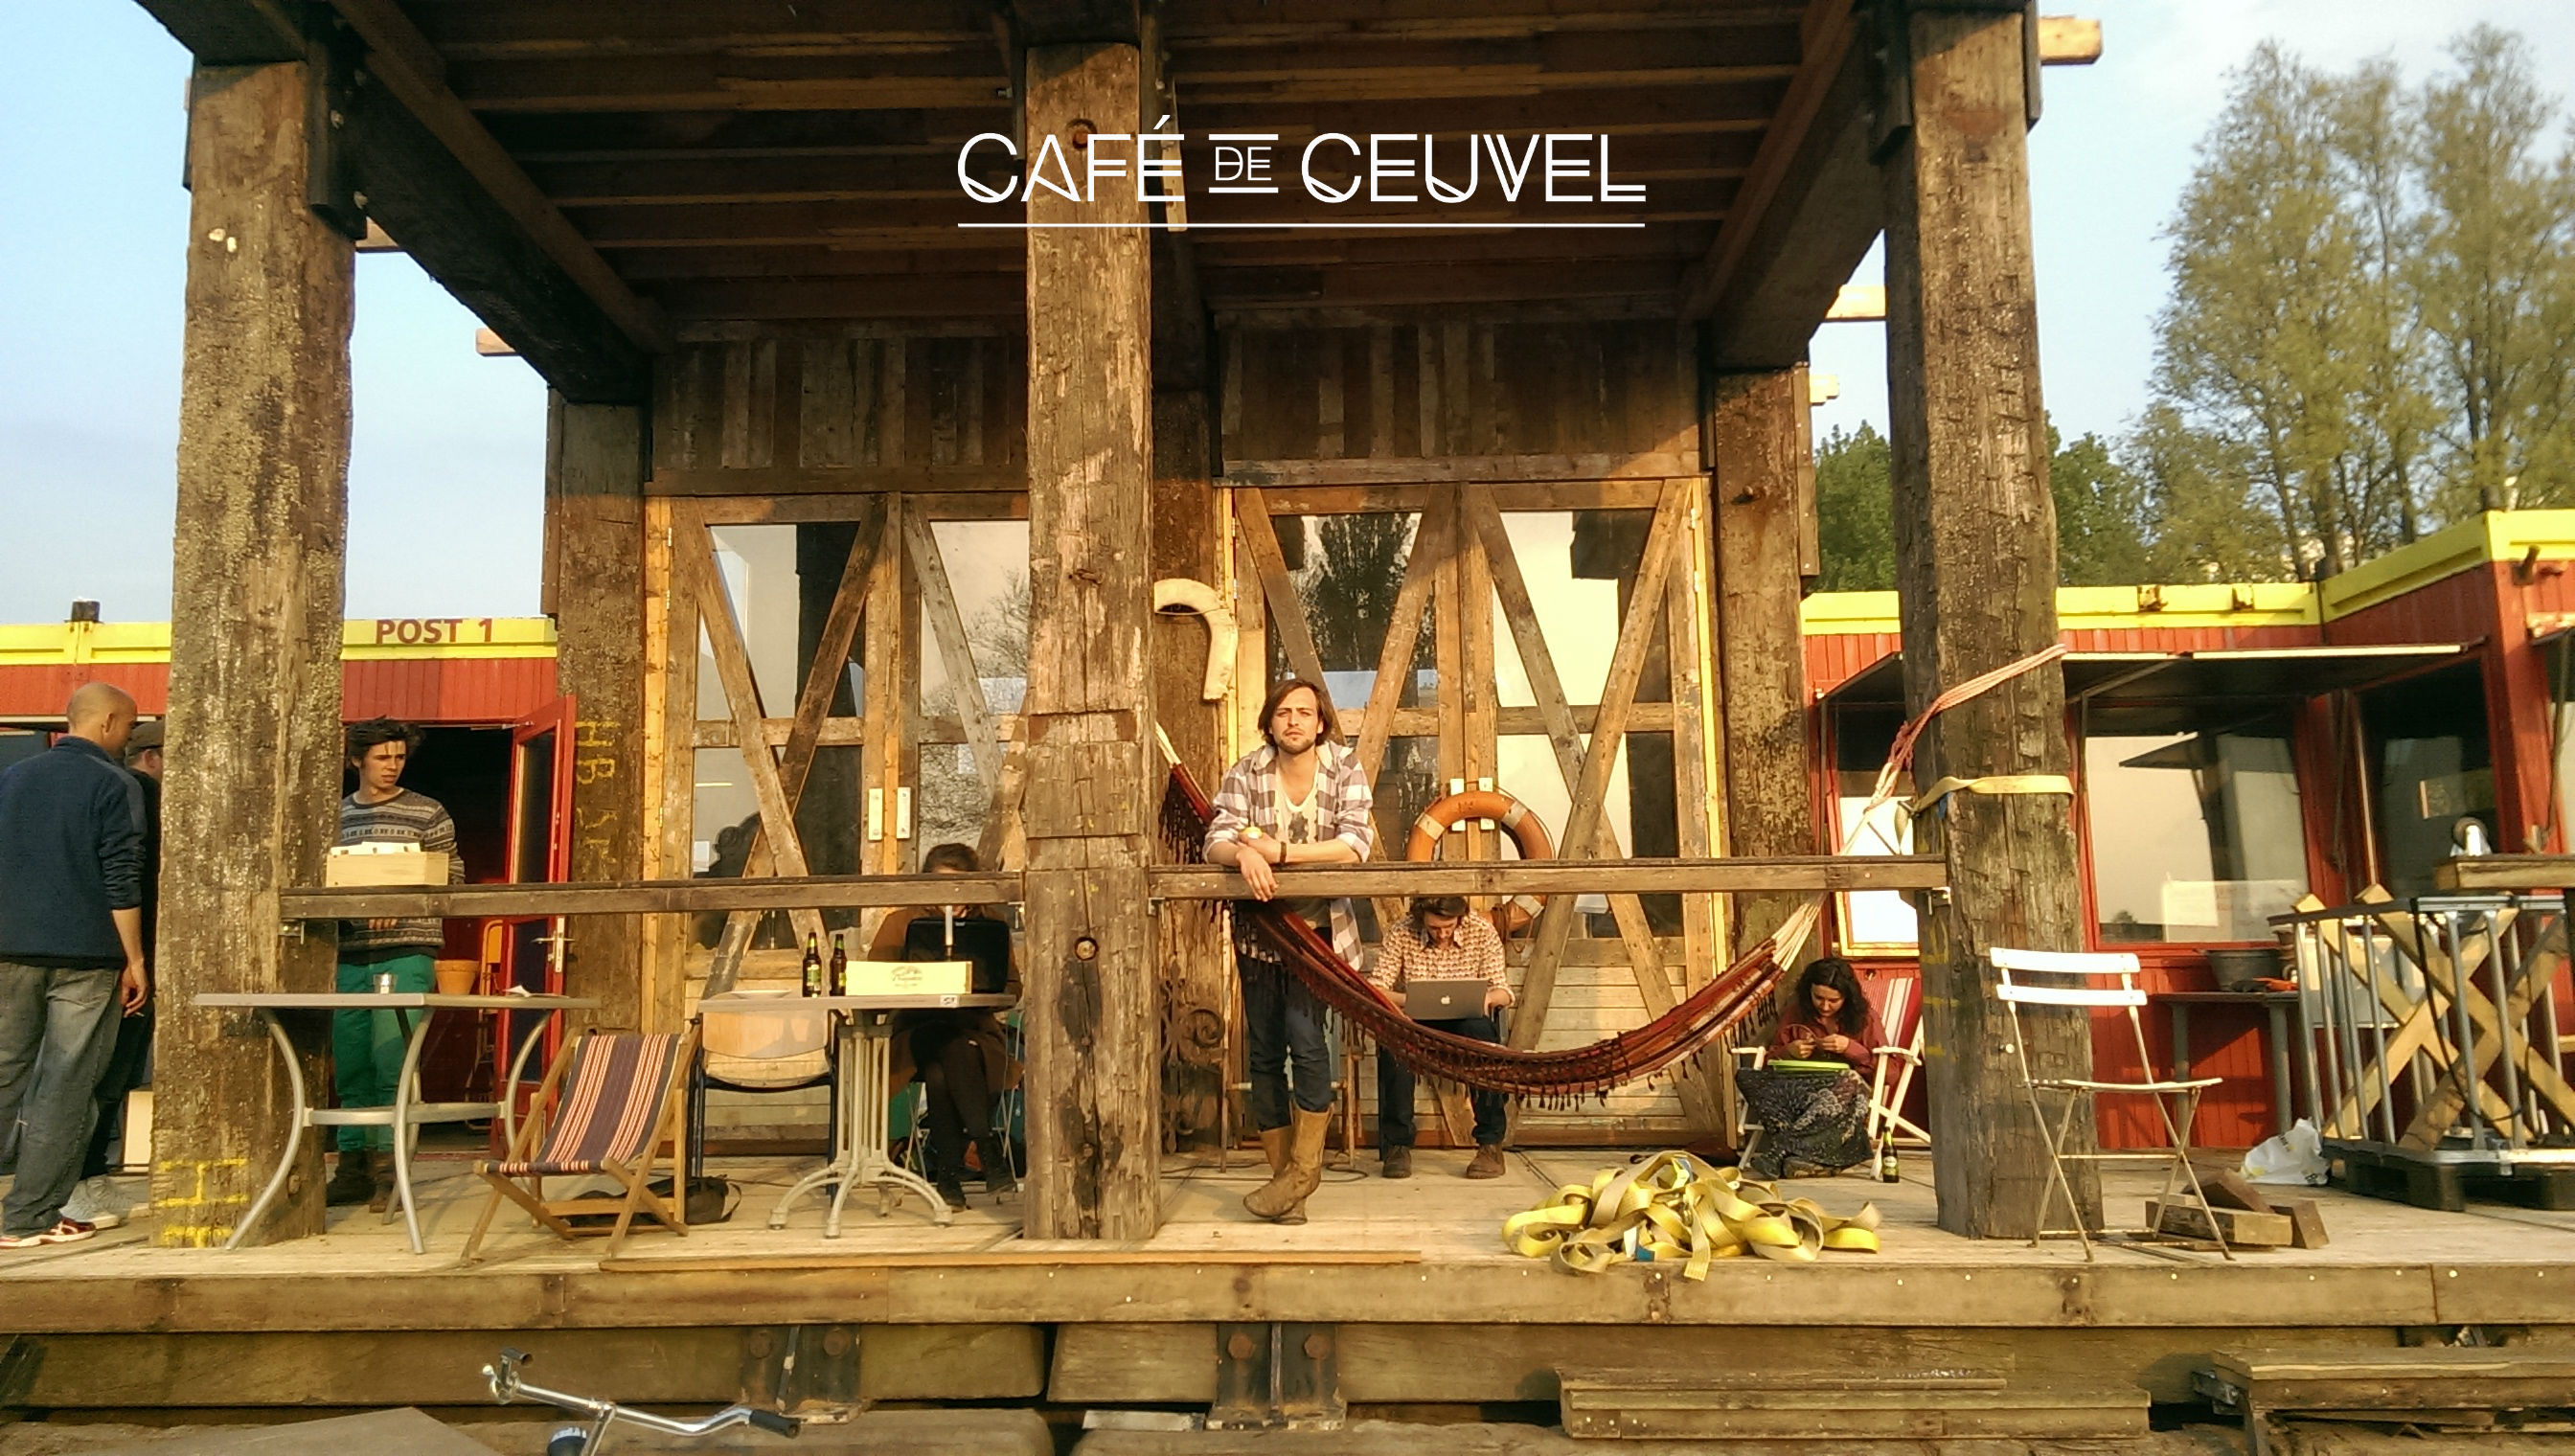 cafe de ceuvel - bart van overbeek